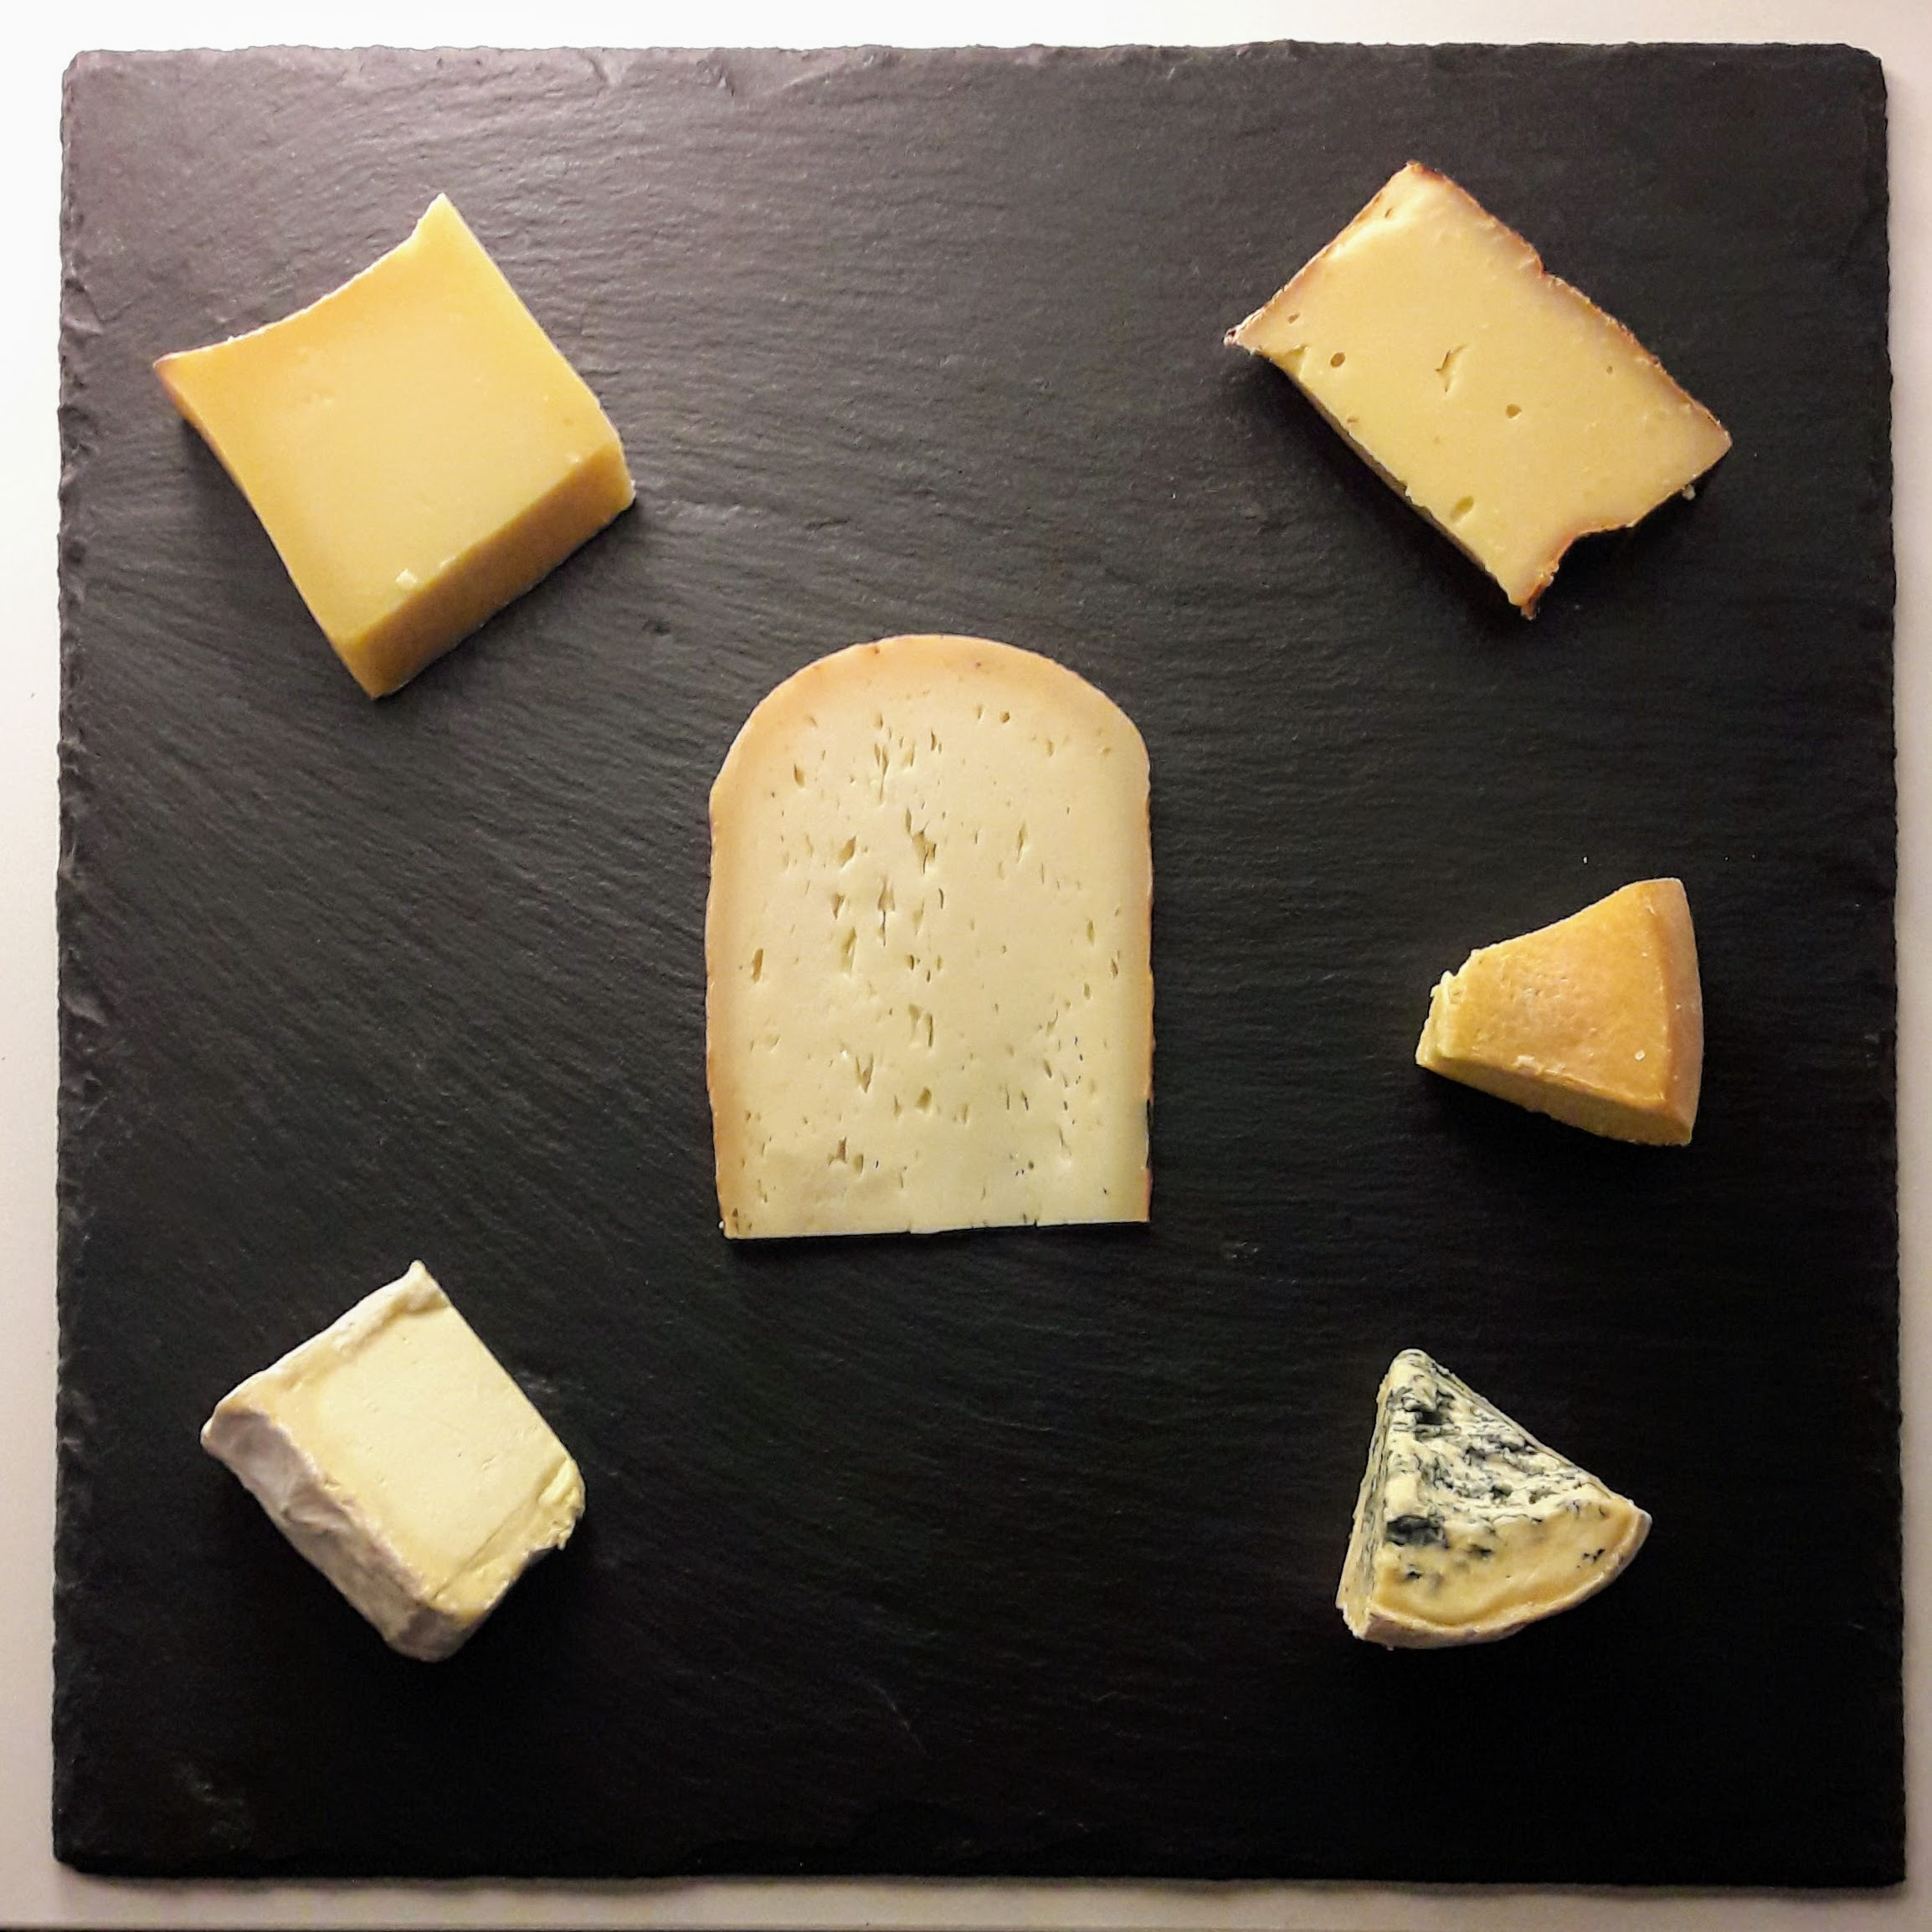 Bethmale is in the middle. From top left clockwise: Appenzeller, Mont Vully, leftover Dutch farmer cheese, Fourme d'Ambert. I don't recall what the bottom left is.